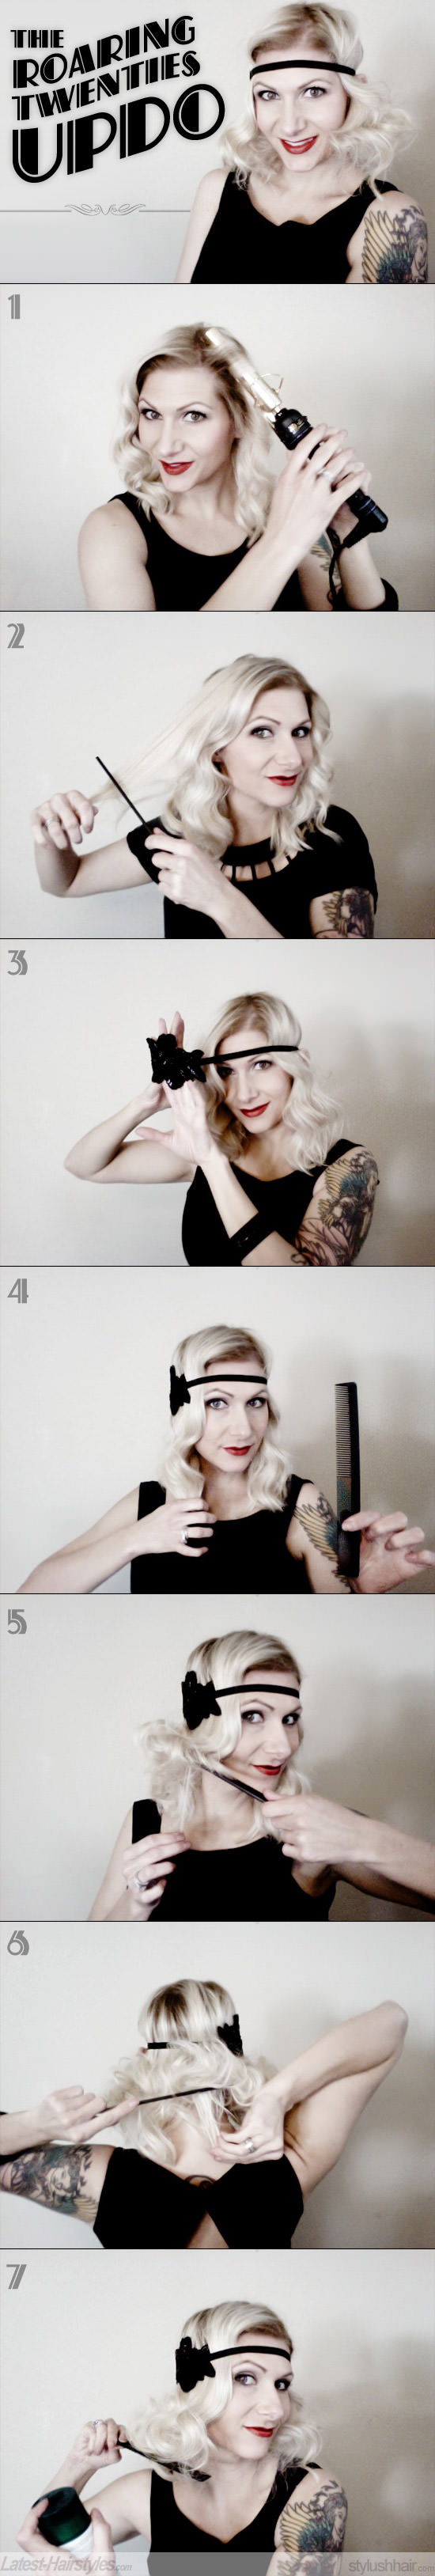 roaring twenties vintage updo hair tutorial